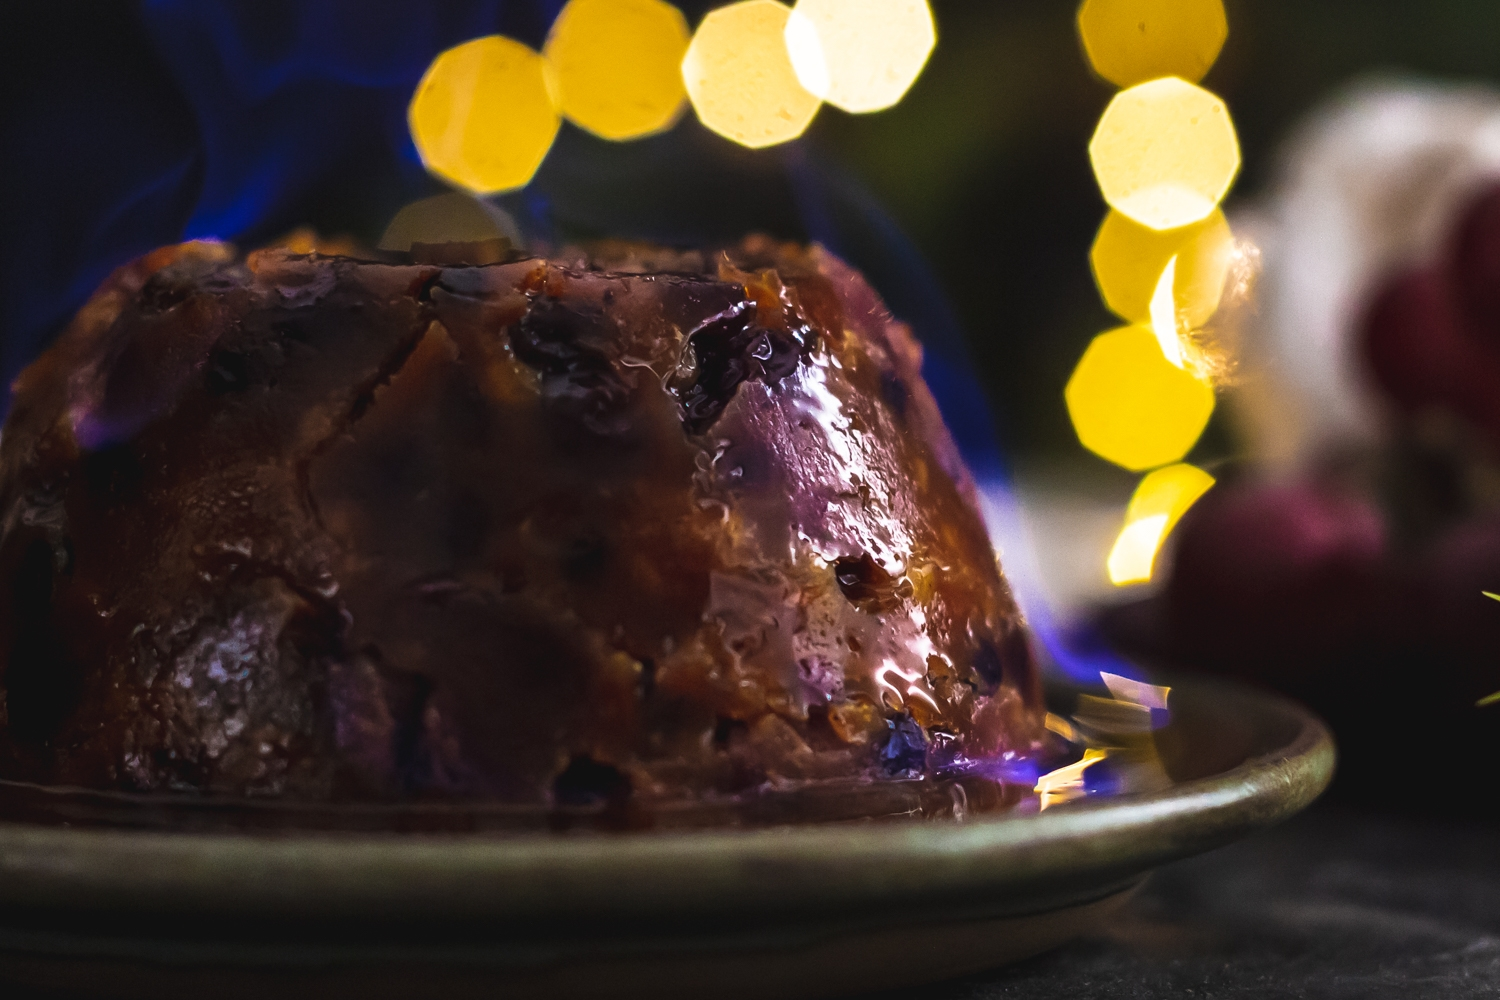 Large Christmas pudding